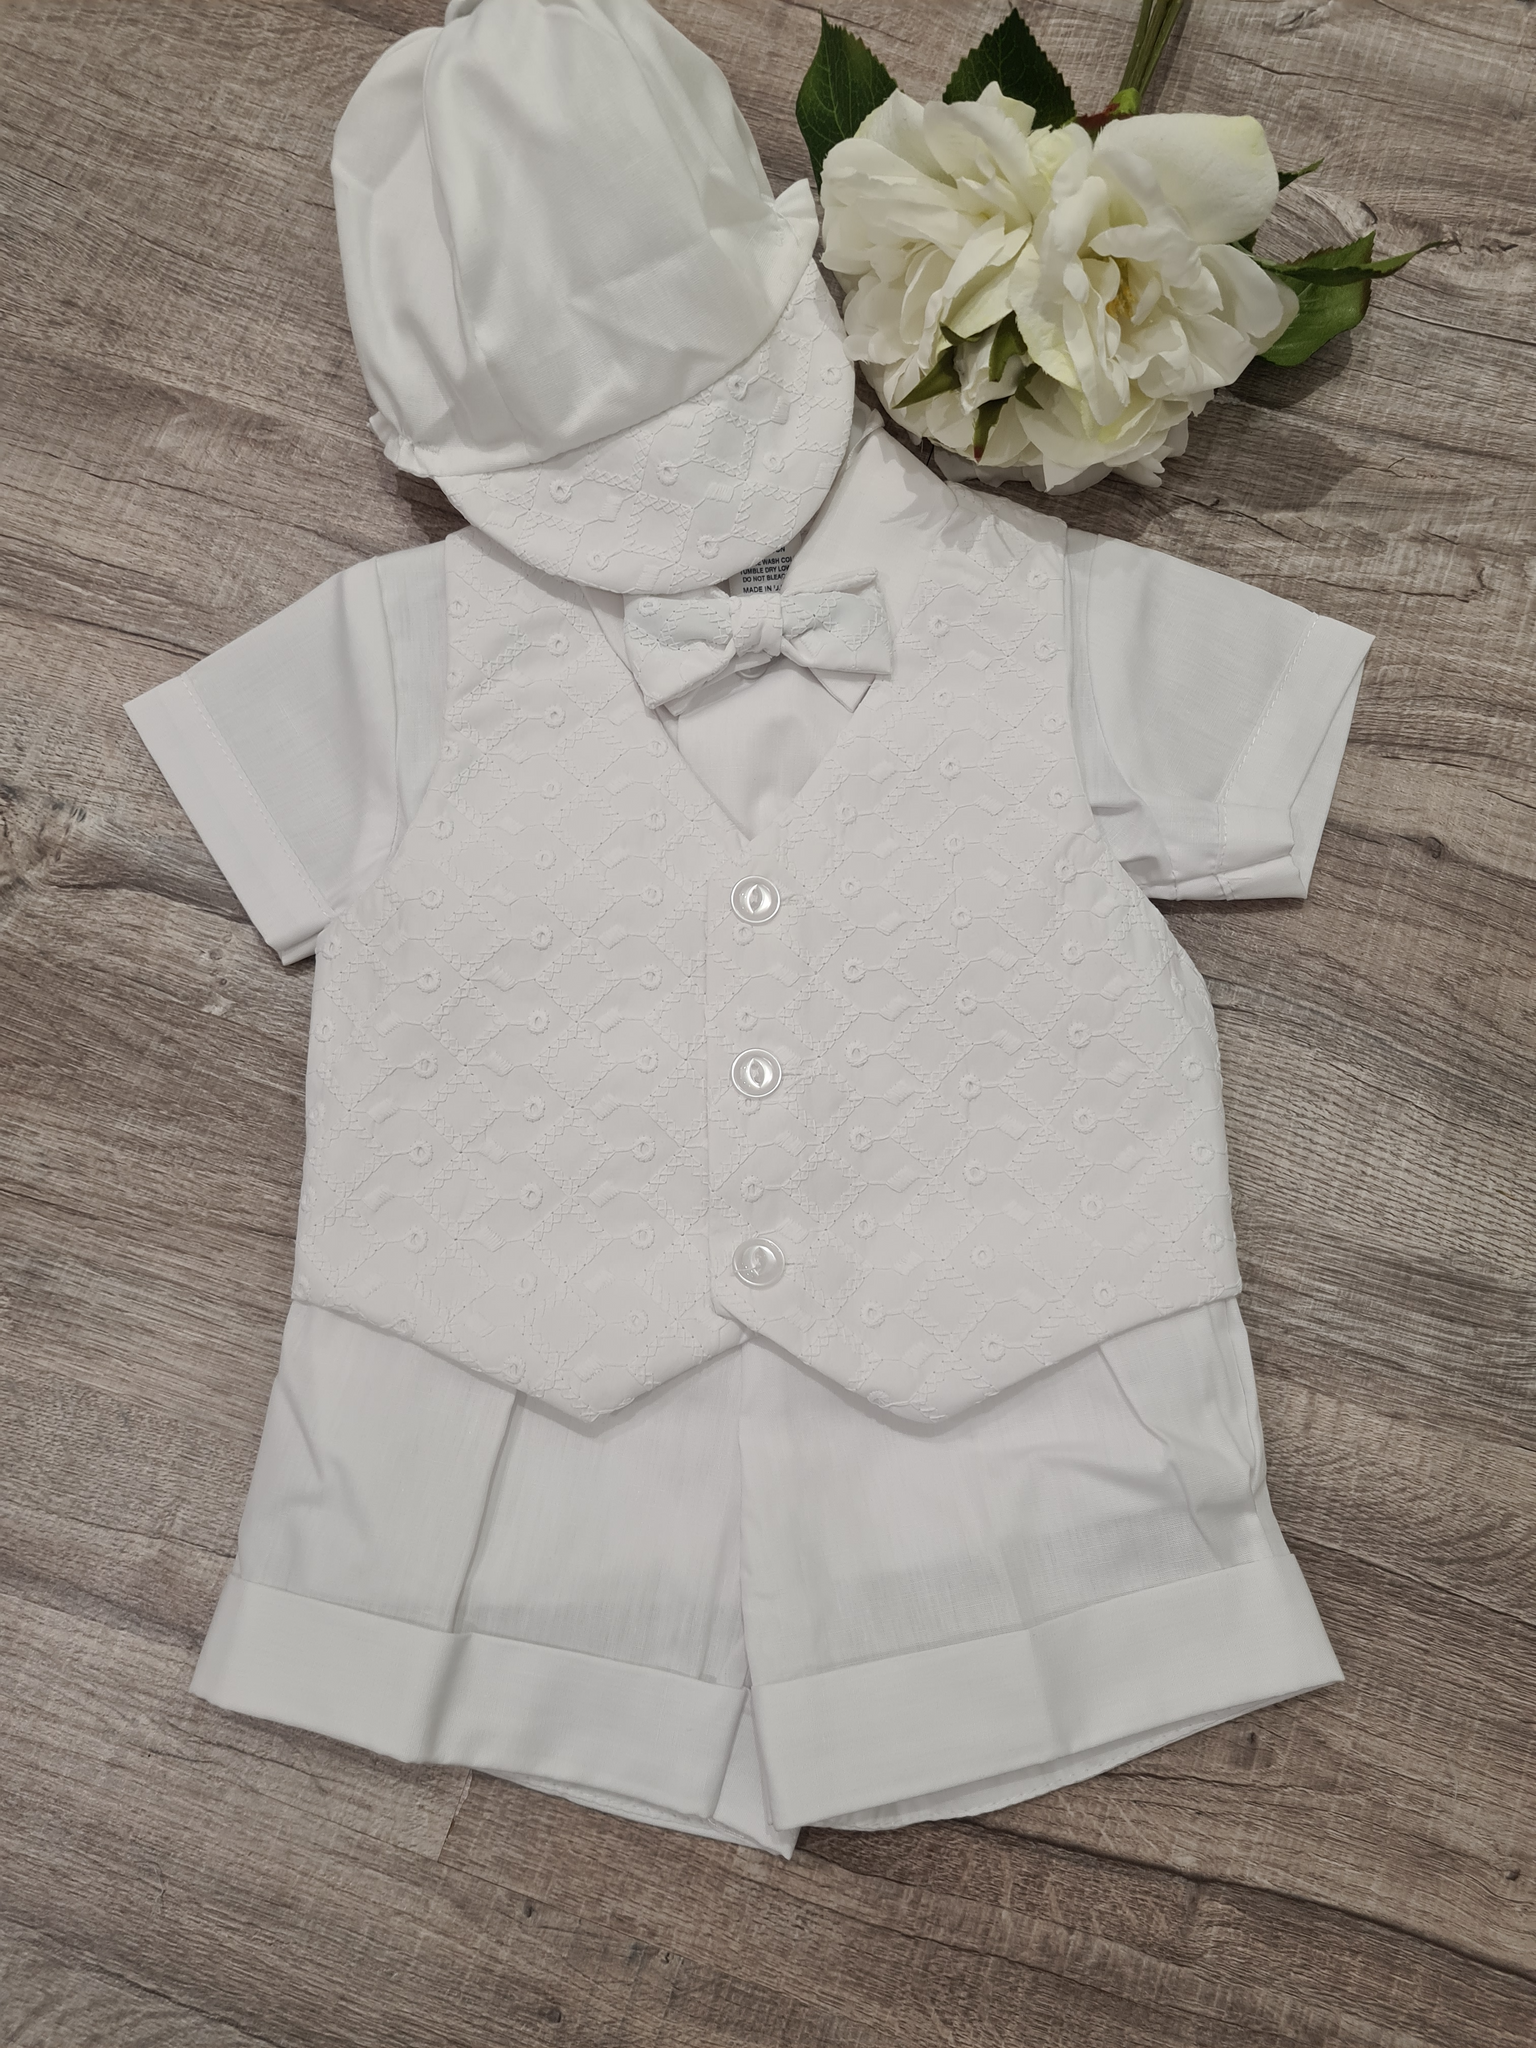 Embroidered vest set - New to Store